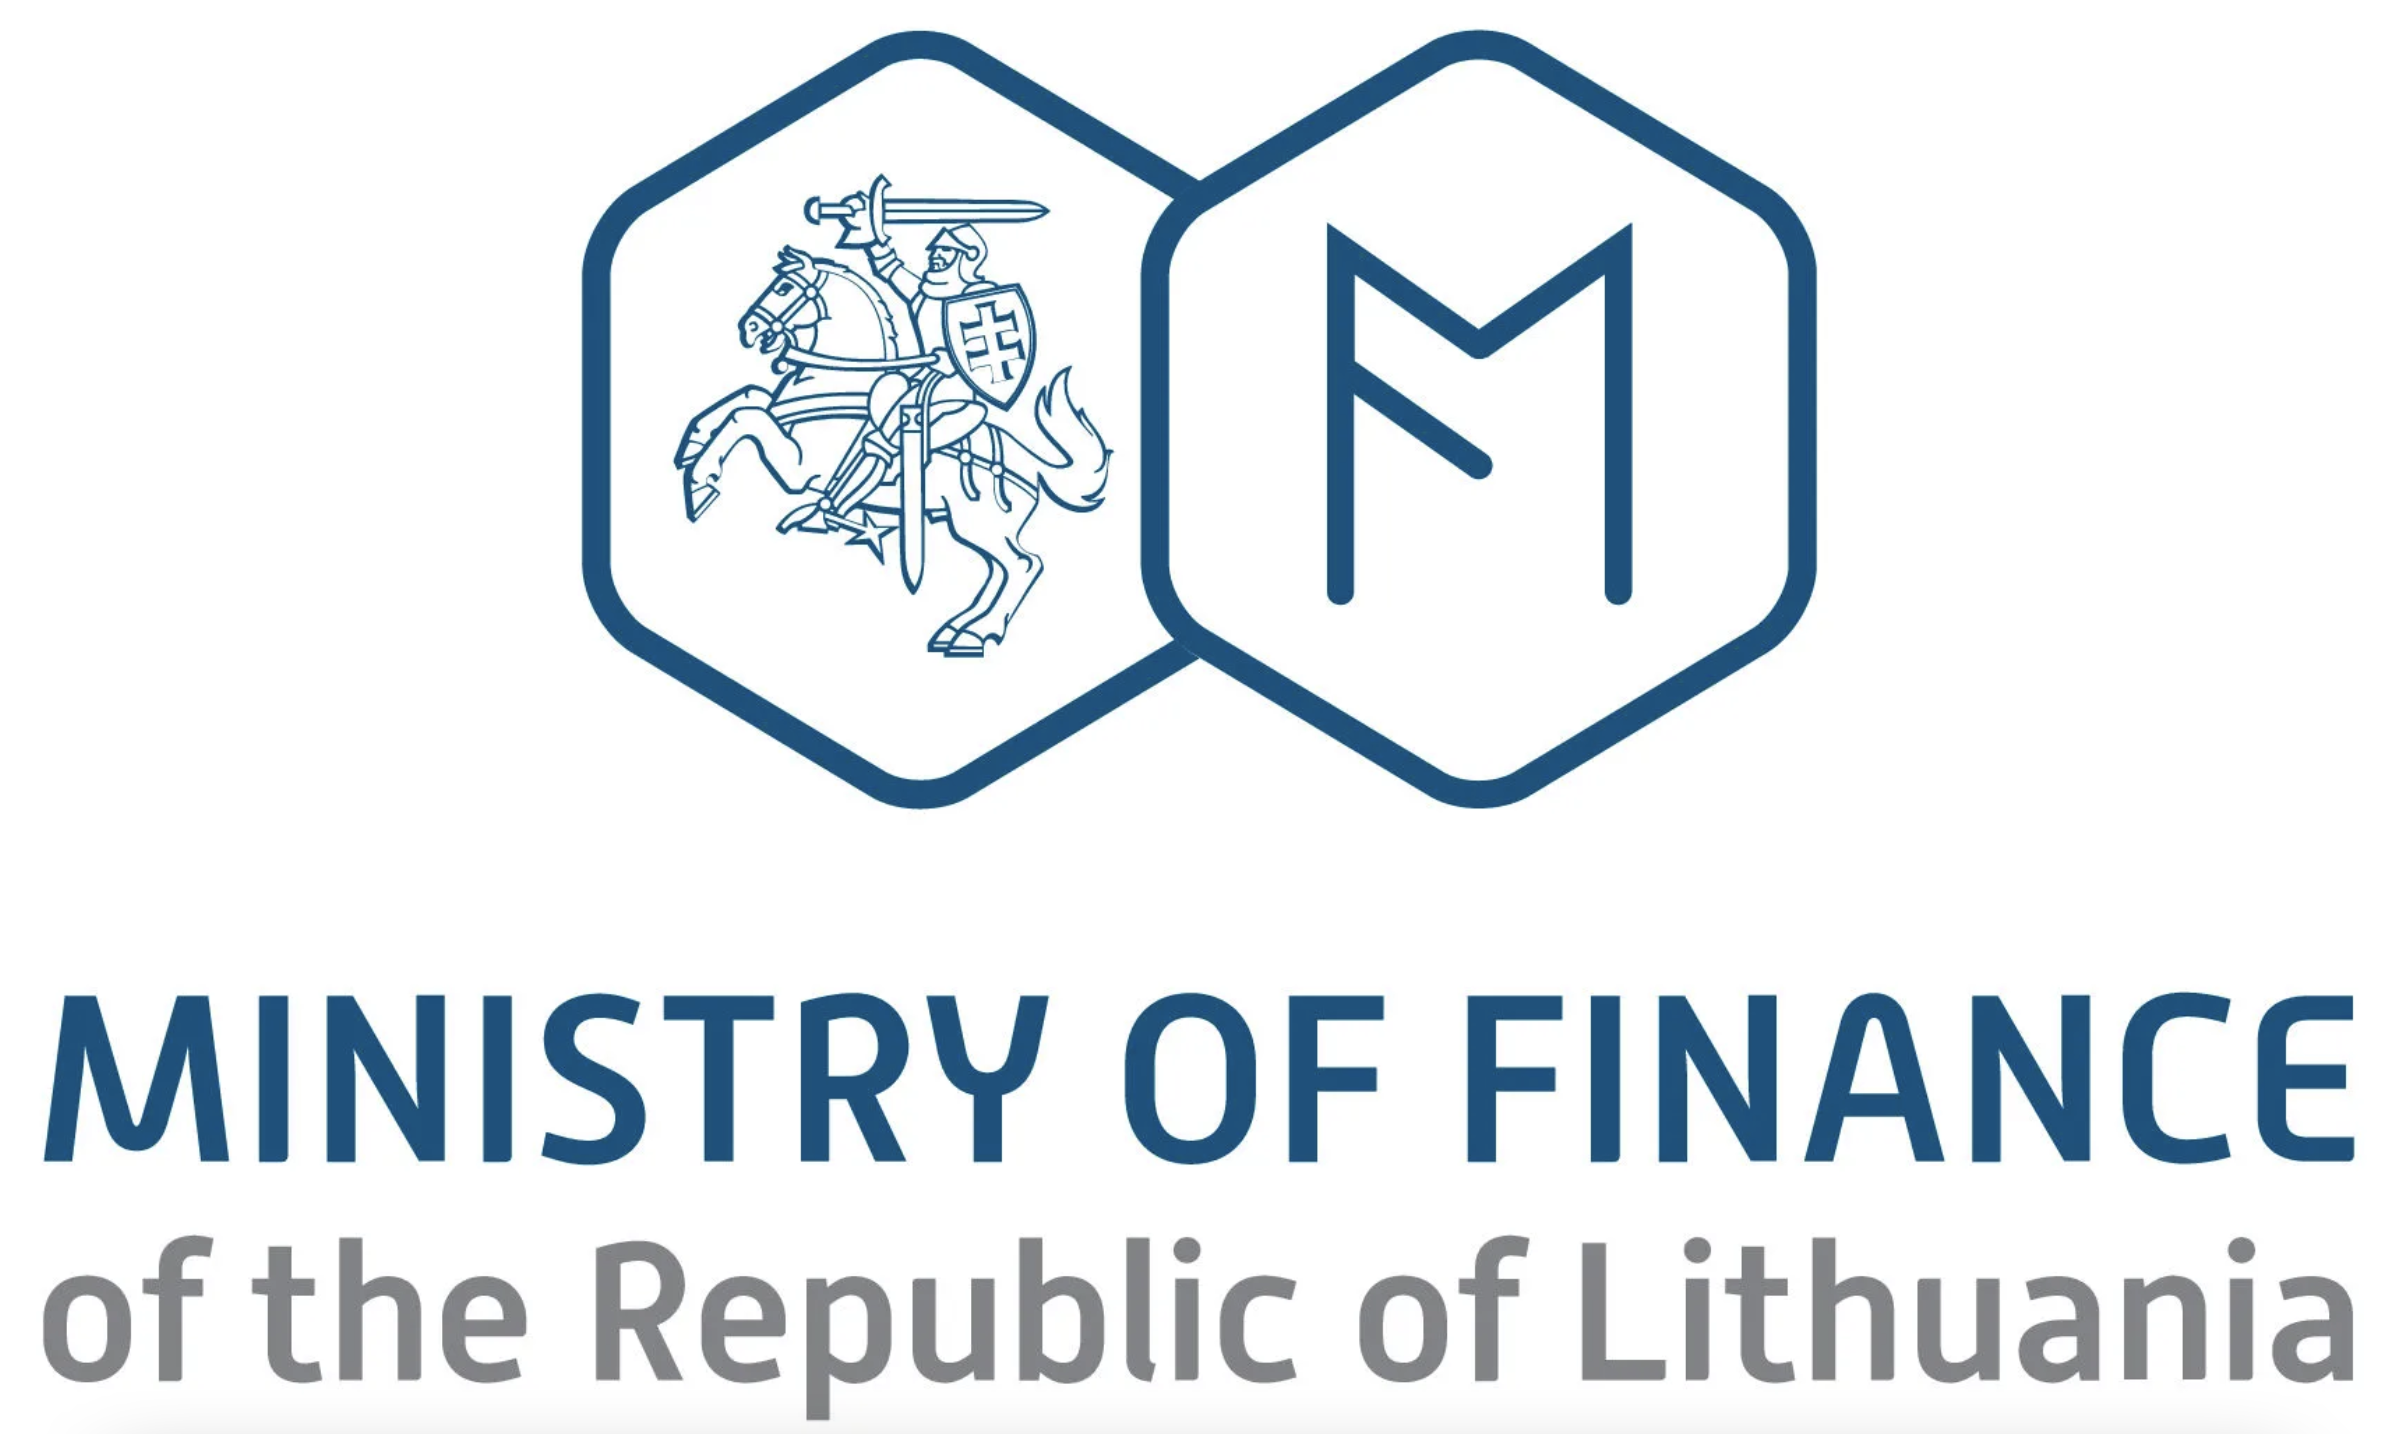 Ministry of Finance of the Republic of Lithuania logo